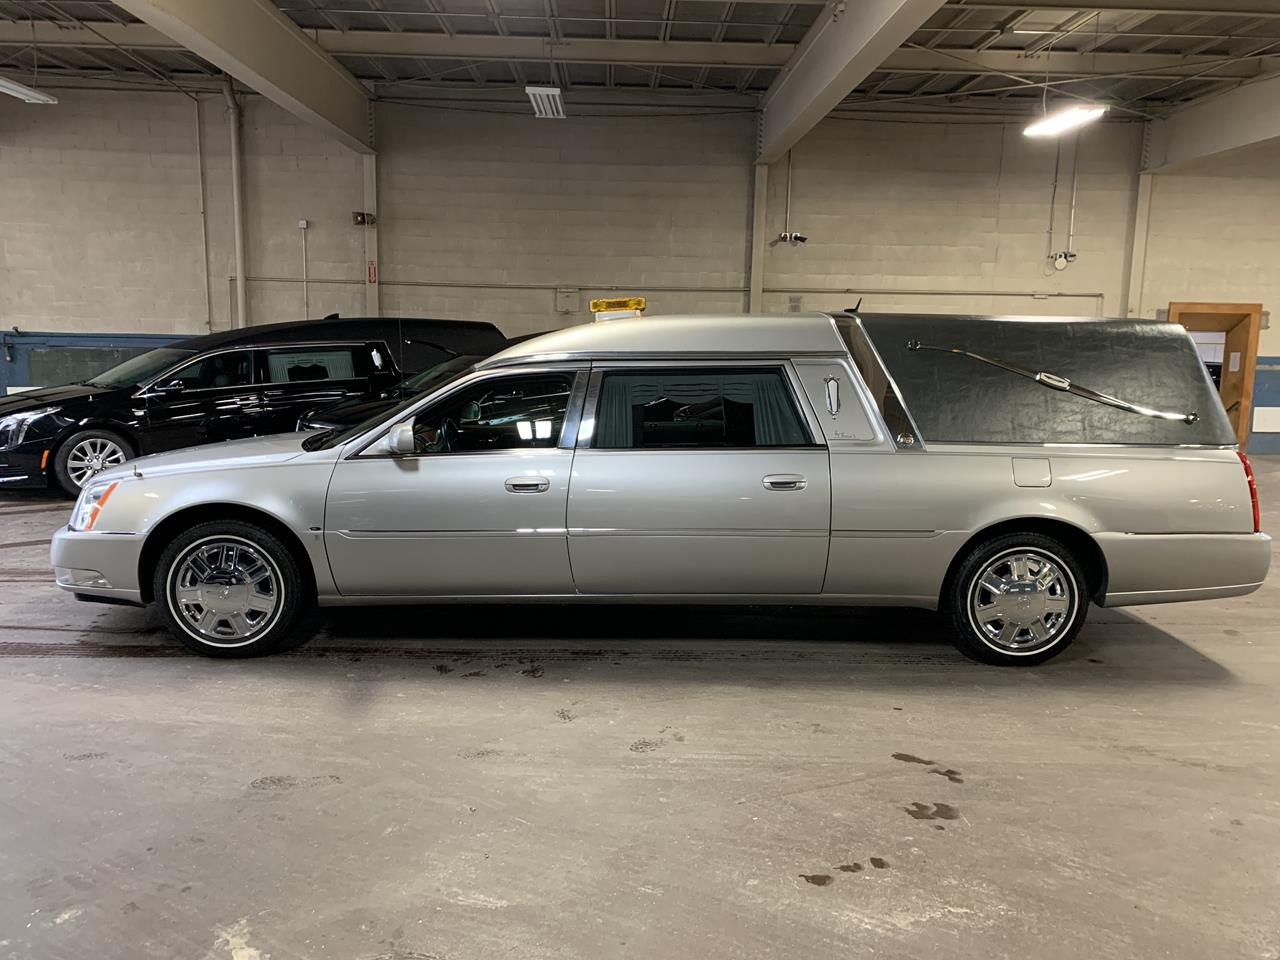 2006 Cadillac Eagle Kingsley Hearse 900 2